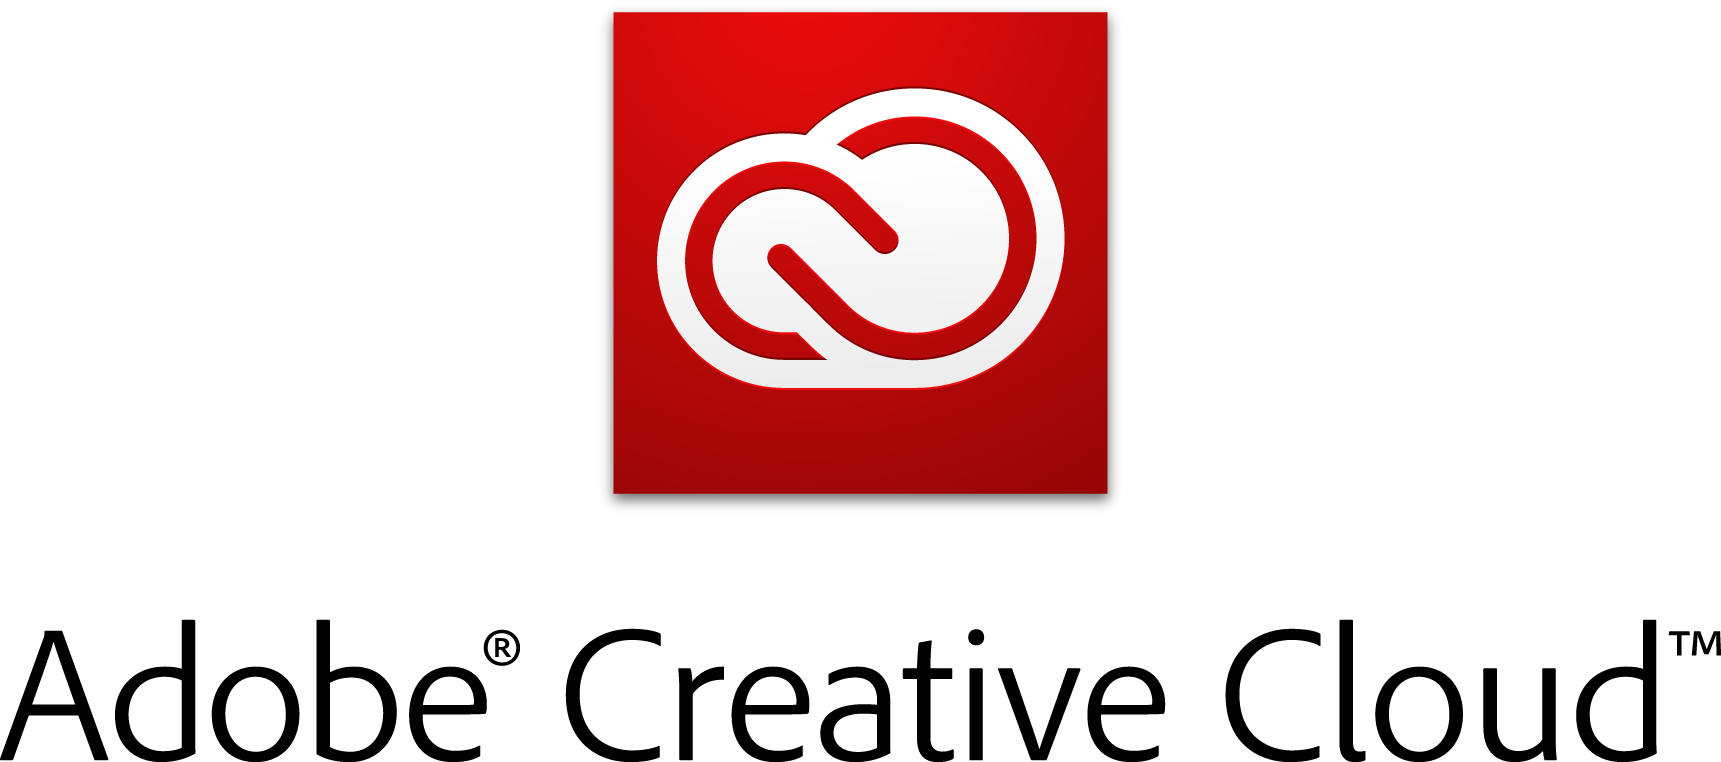 Adobe creative suite. Creative Cloud